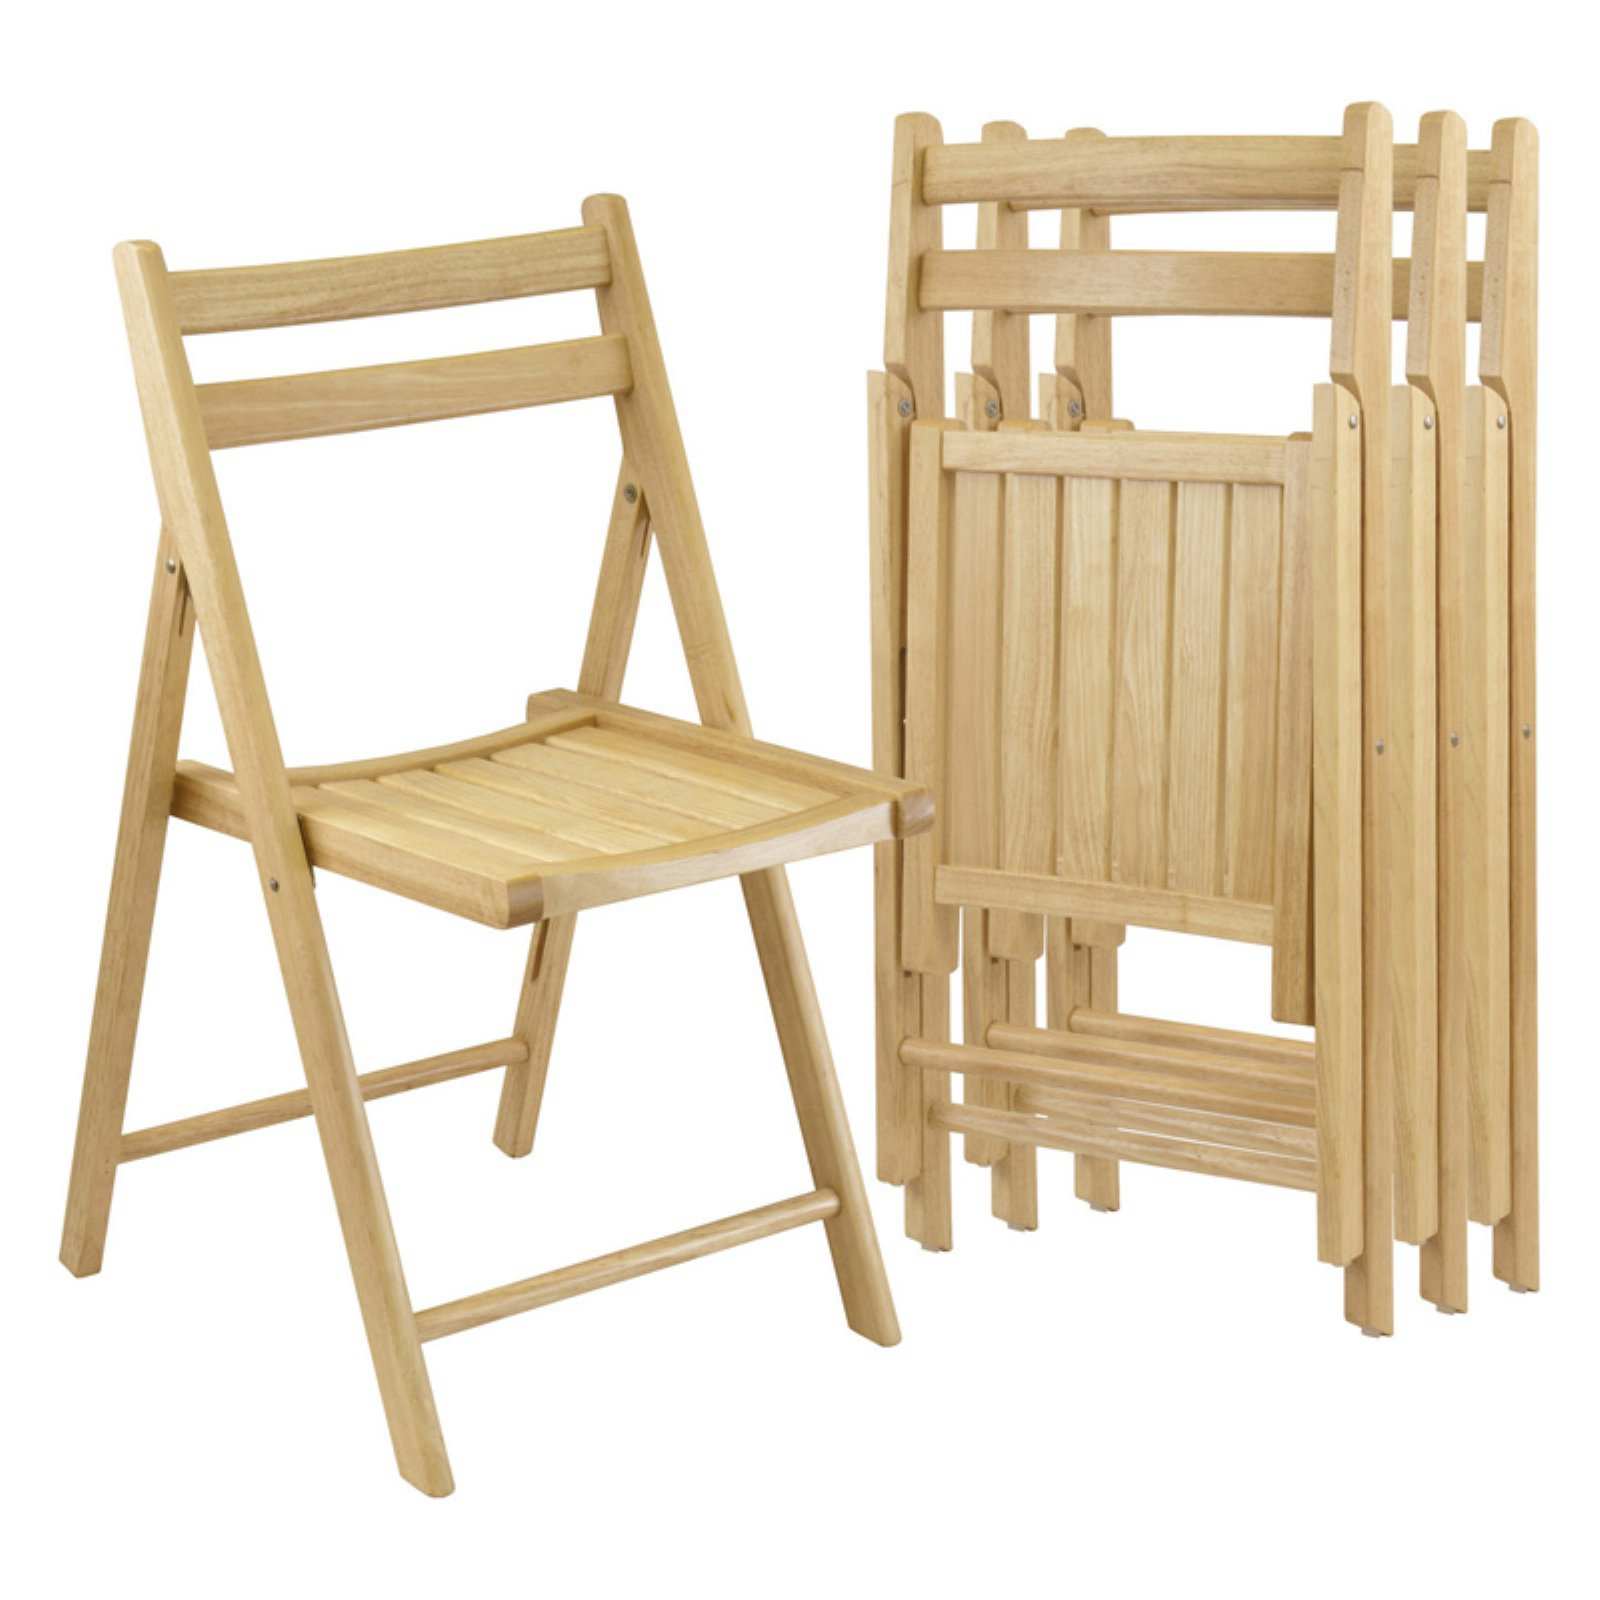 Delicieux Folding Chairs, Set Of 4, Natural